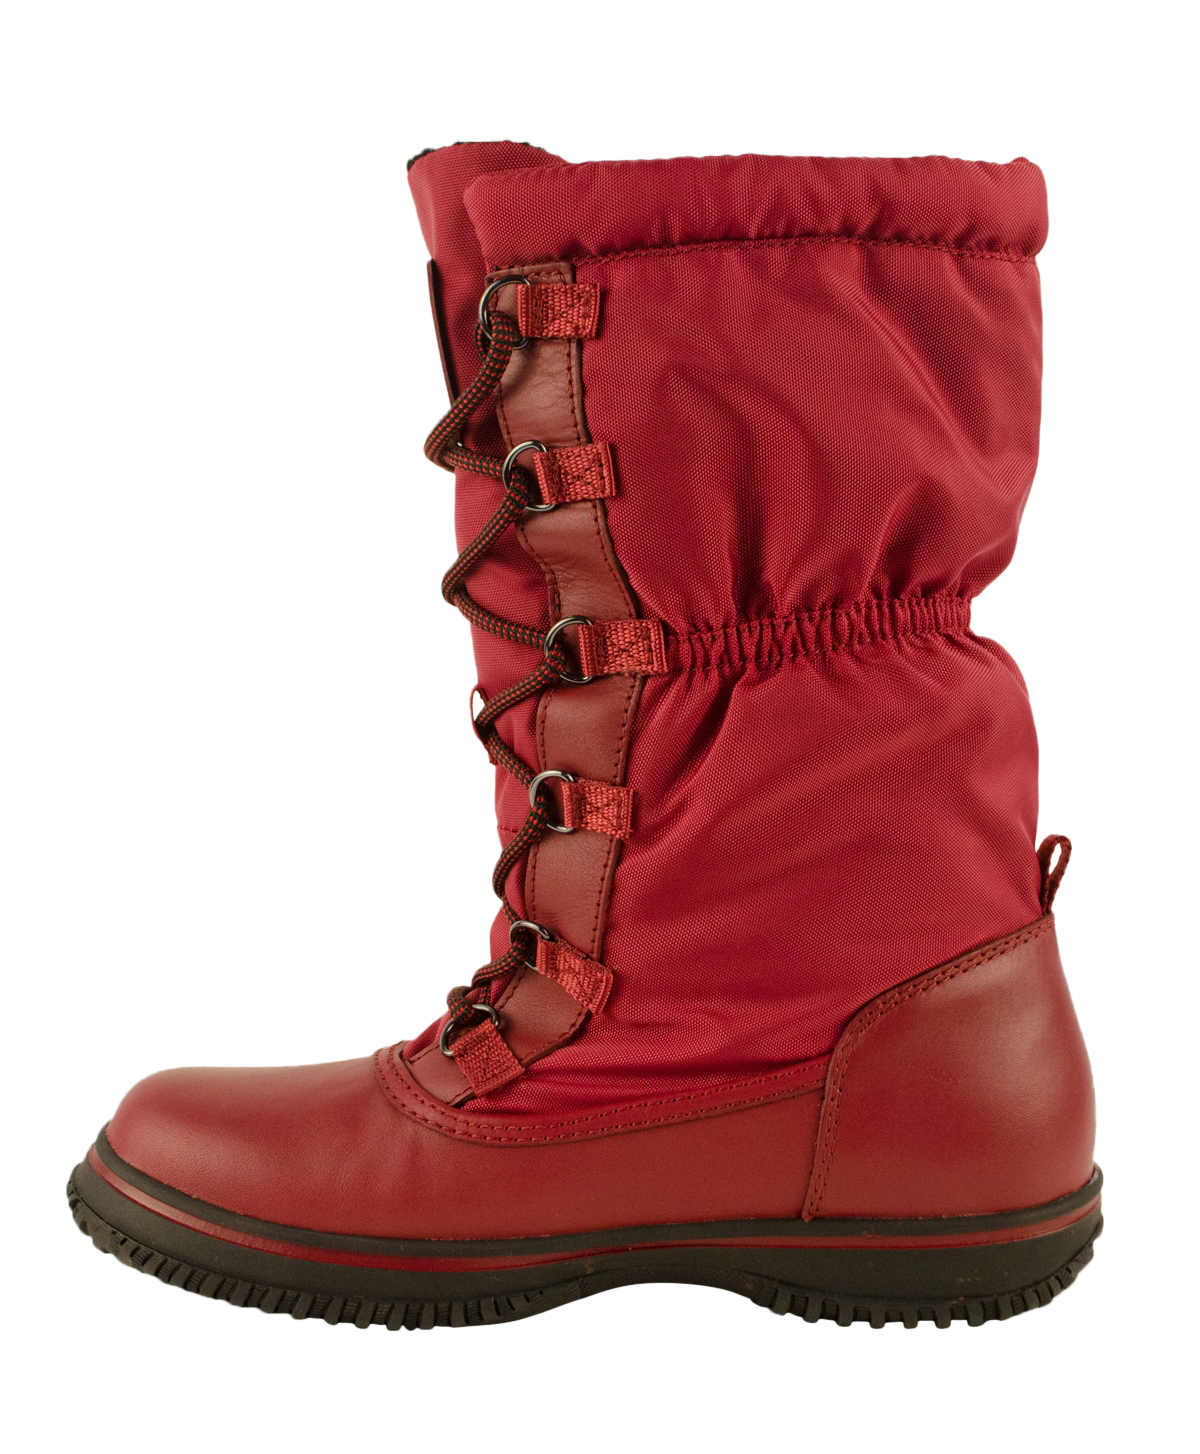 COACH Women's Sage Cold Weather Lace Up Boots